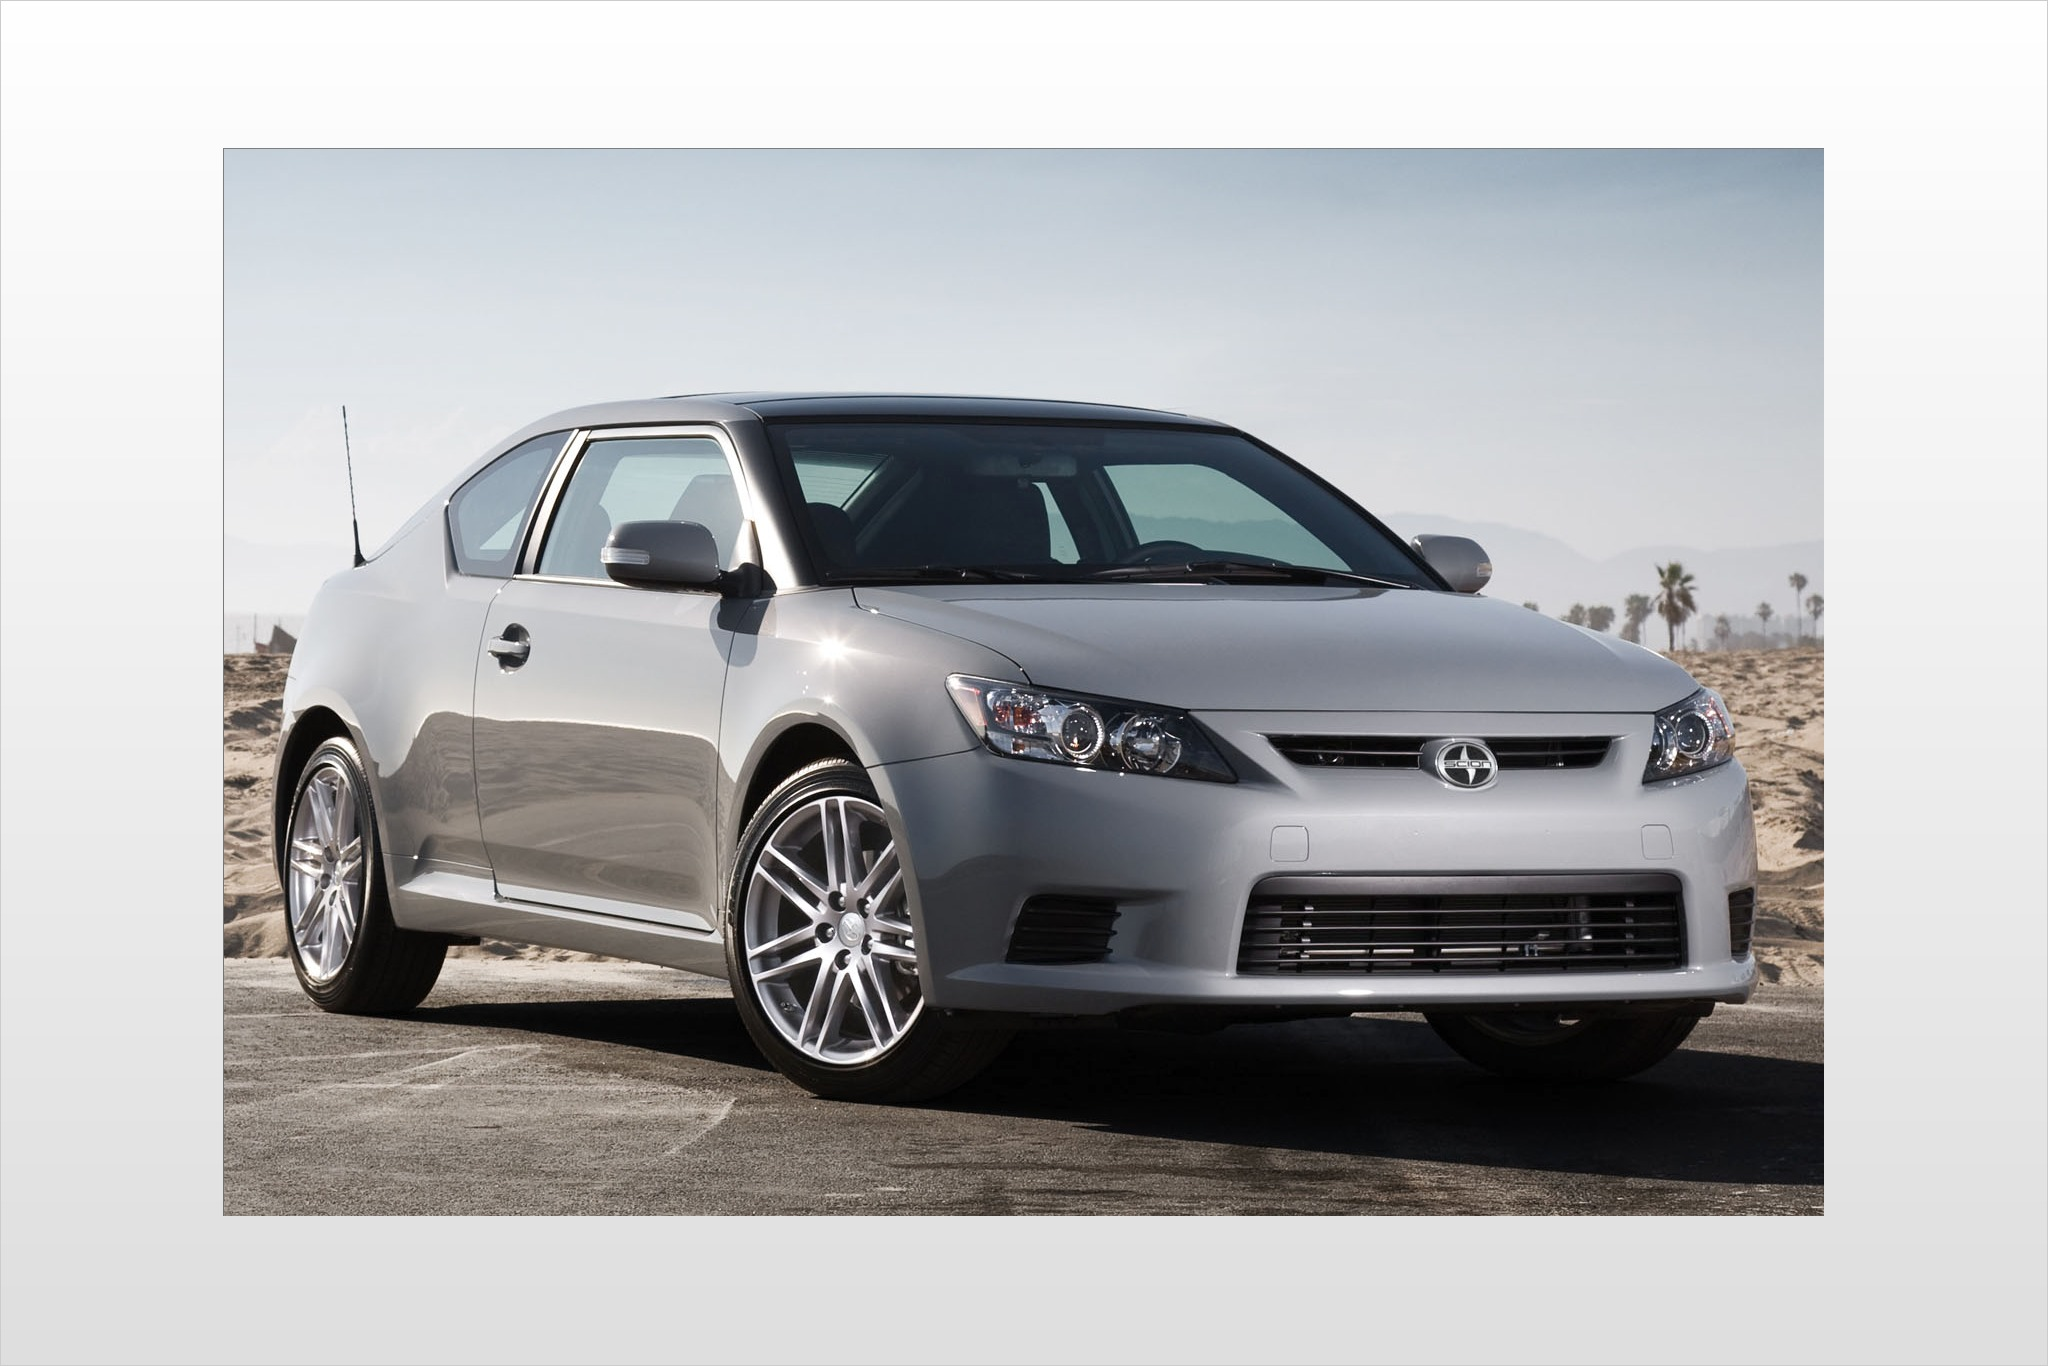 2013 Scion tC 2dr Hatchba exterior #7